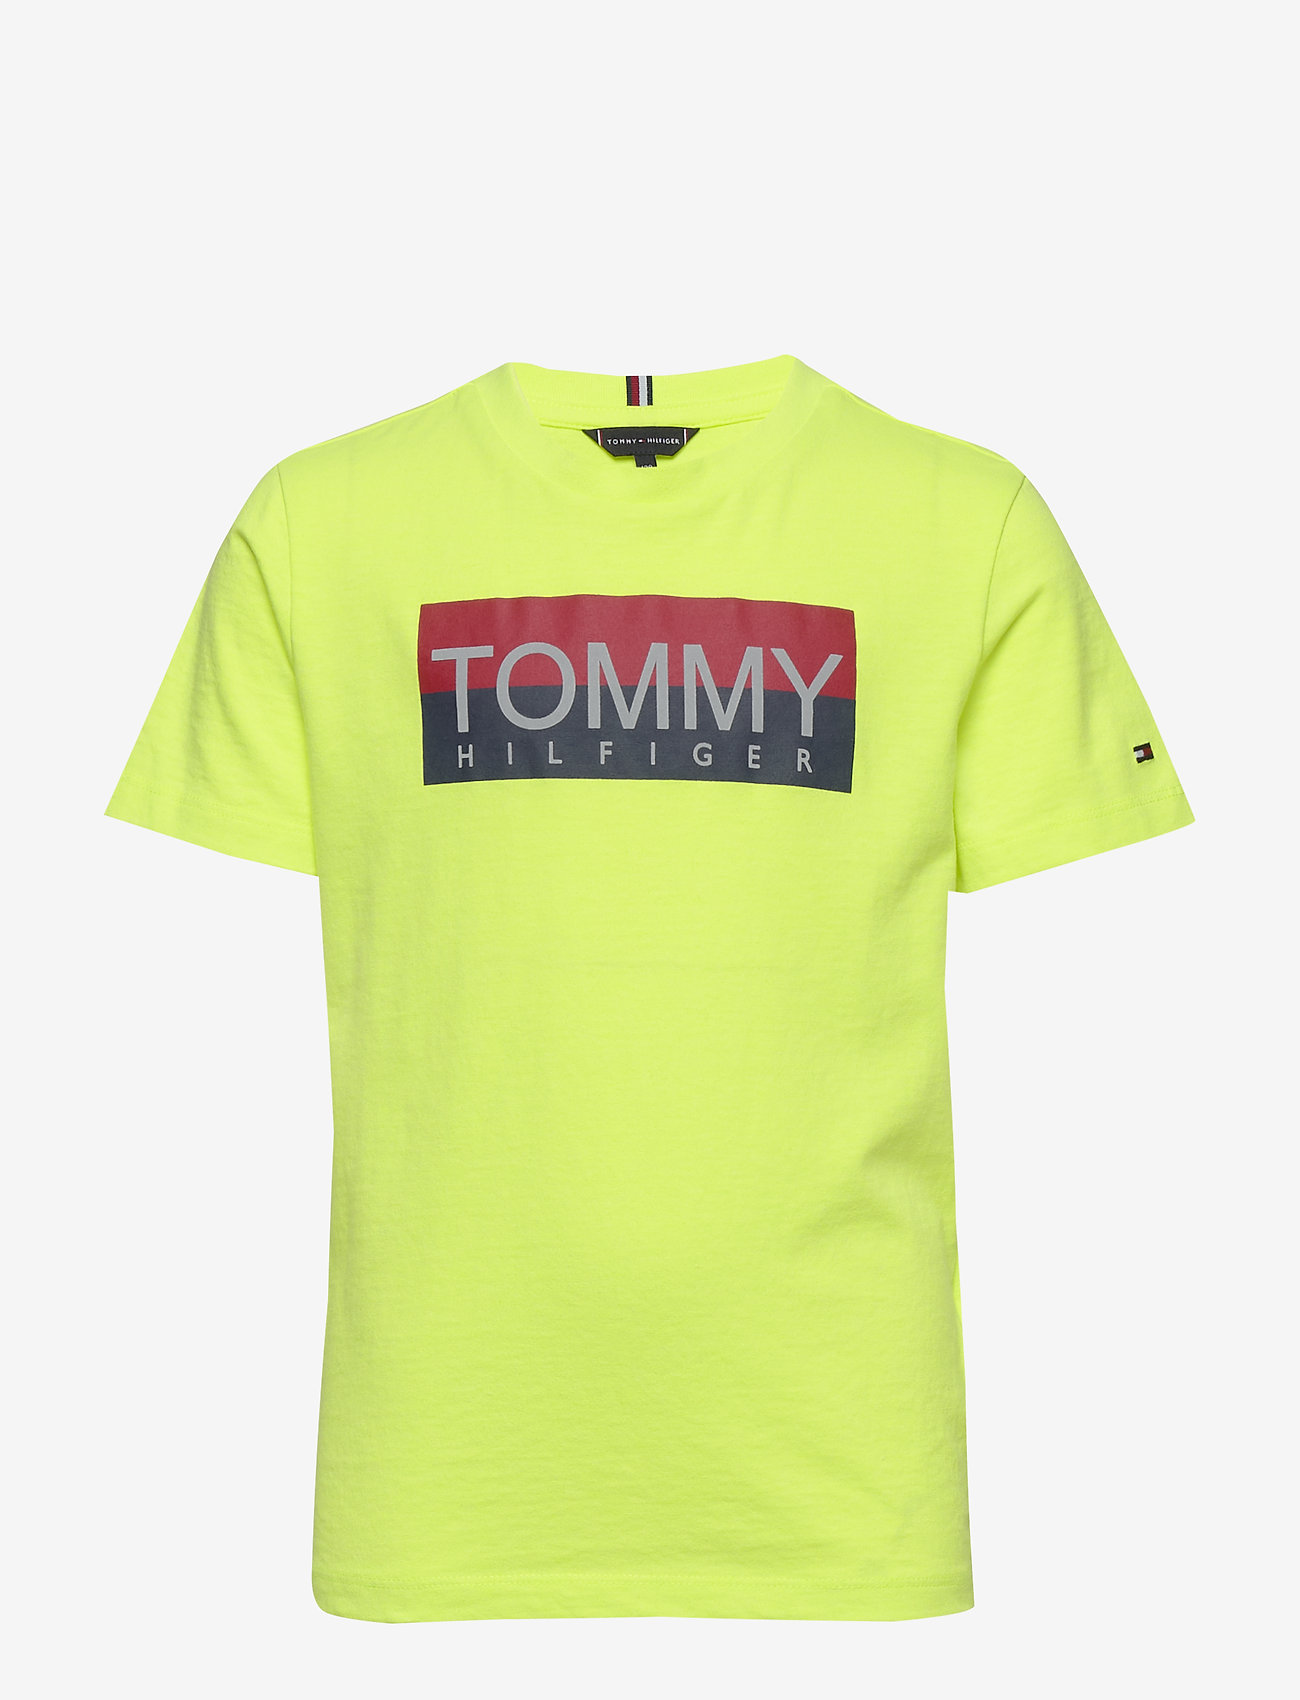 Tommy Hilfiger - REFLECTIVE HILFIGER TEE S/S - short-sleeved - safety yellow 13-0630